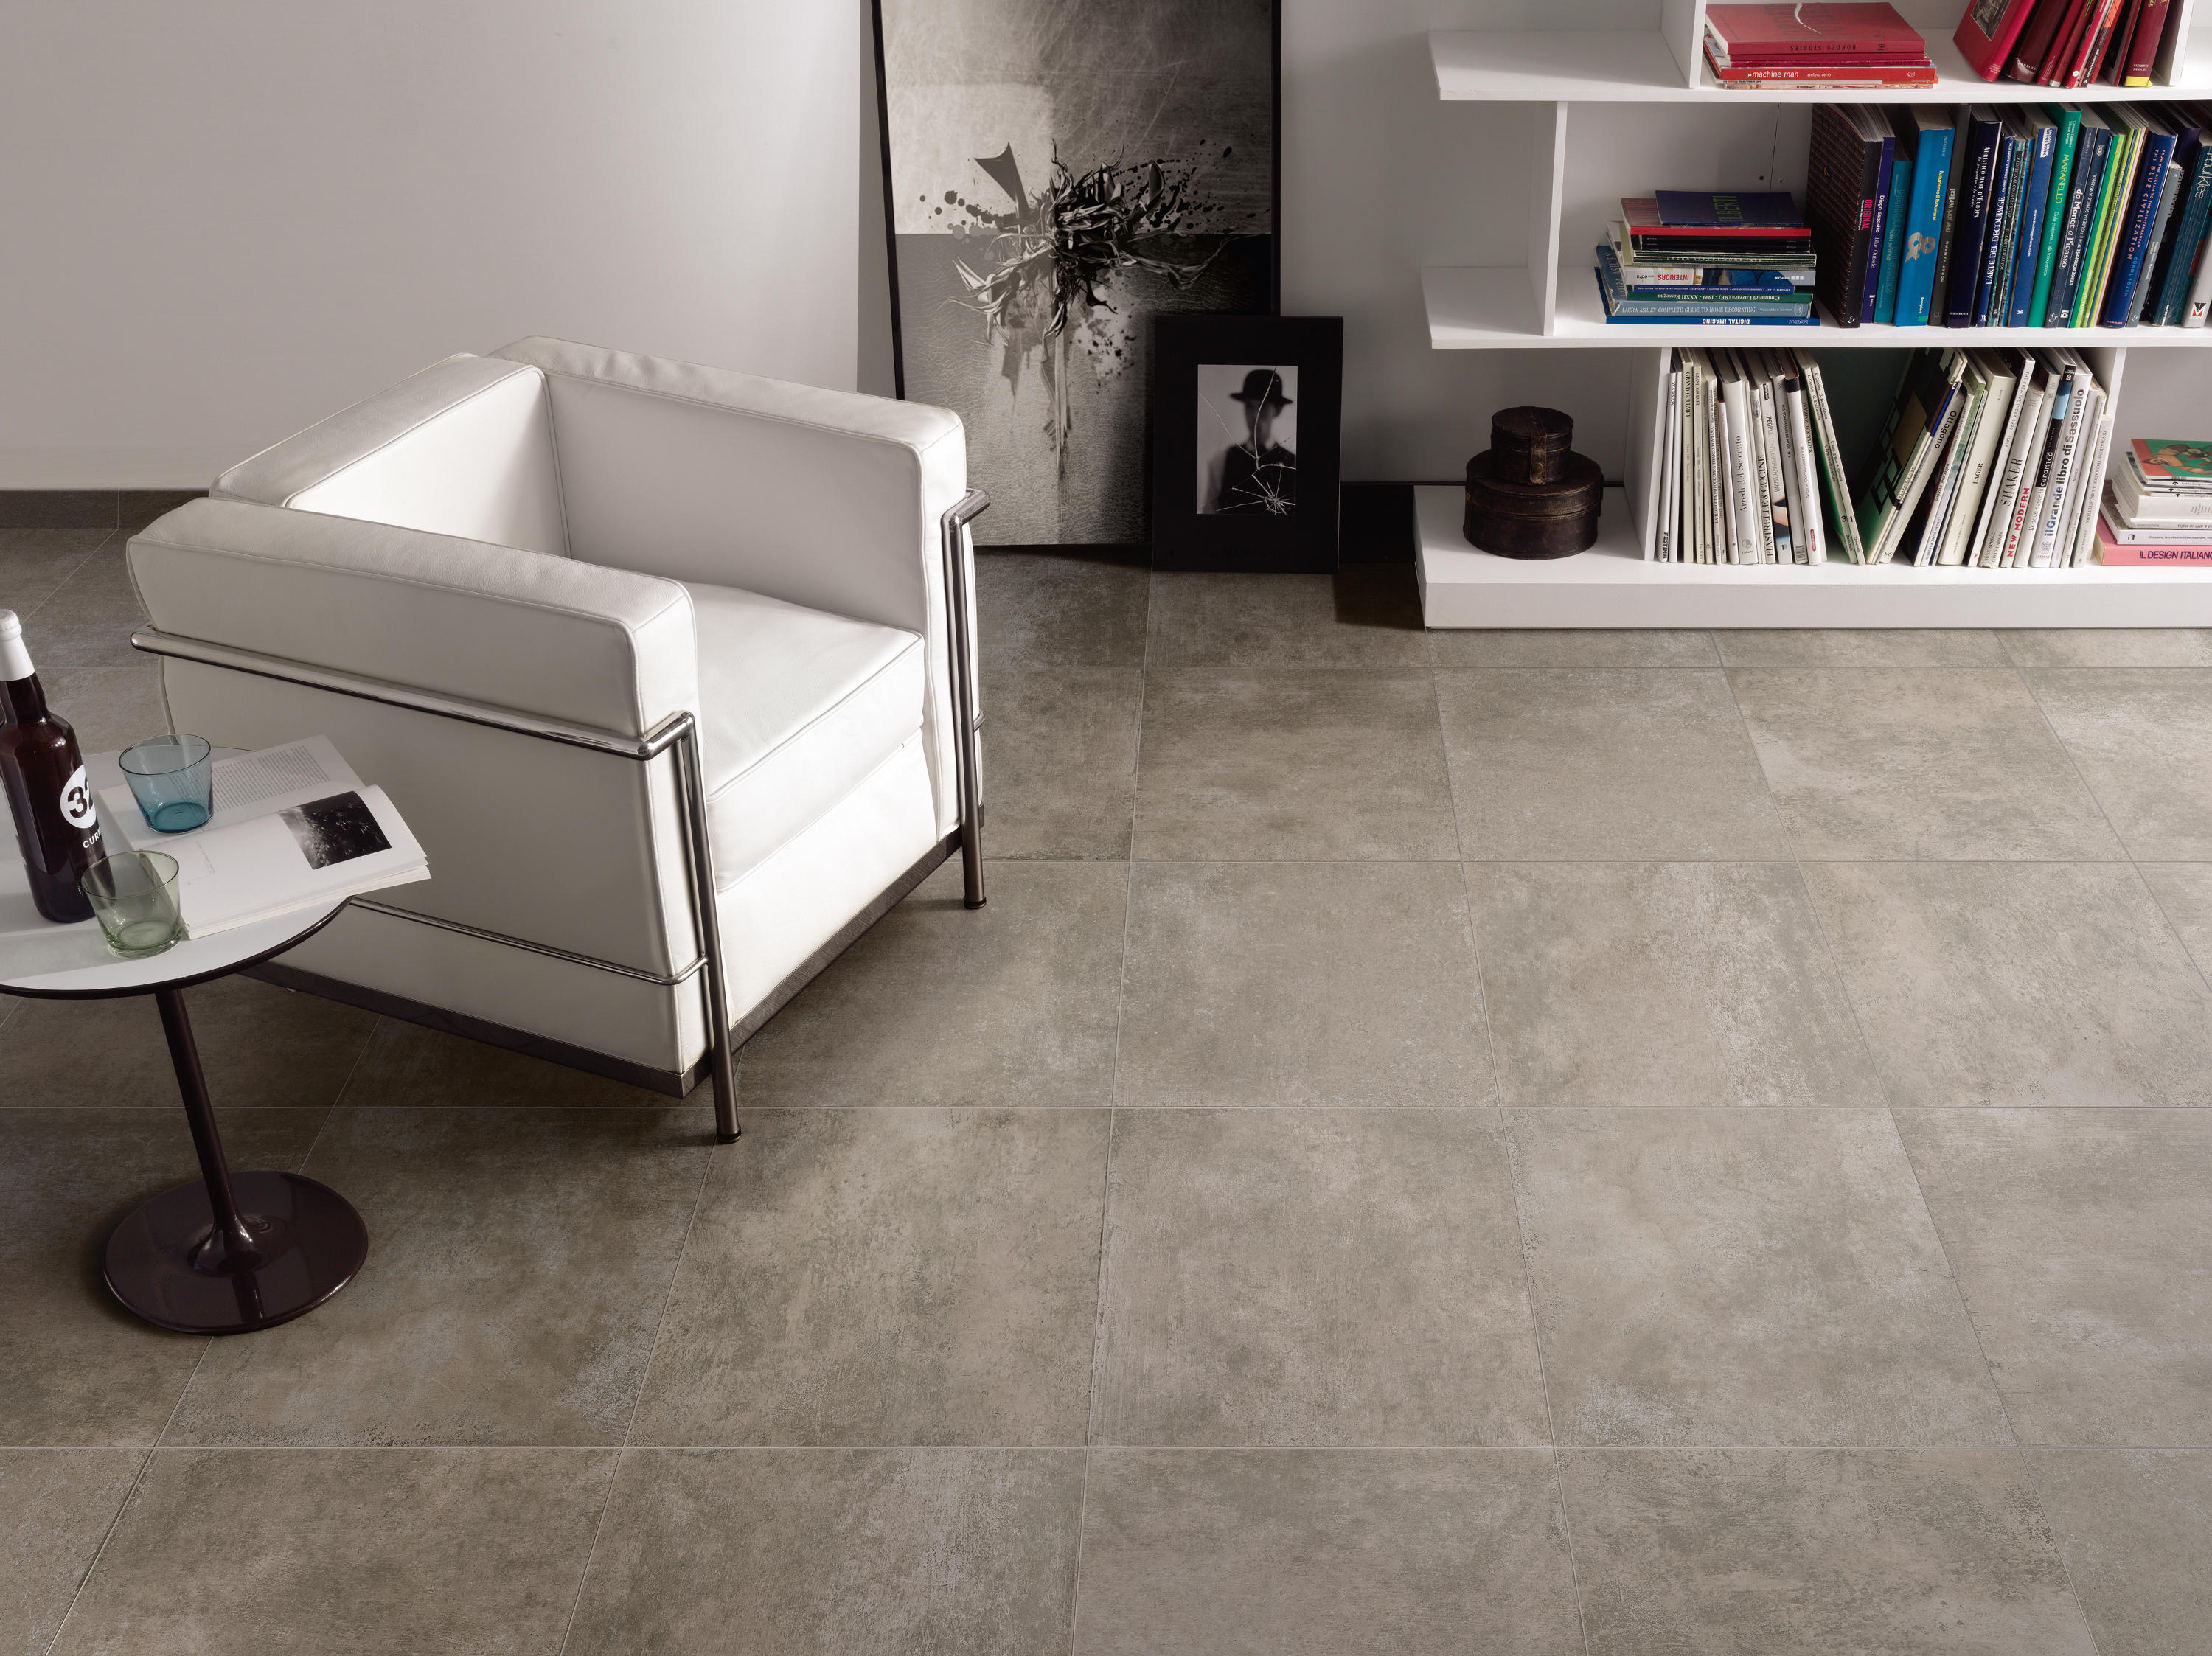 Miniwalk greige carrelages de ascot ceramiche architonic for Carrelage 80x80 gris